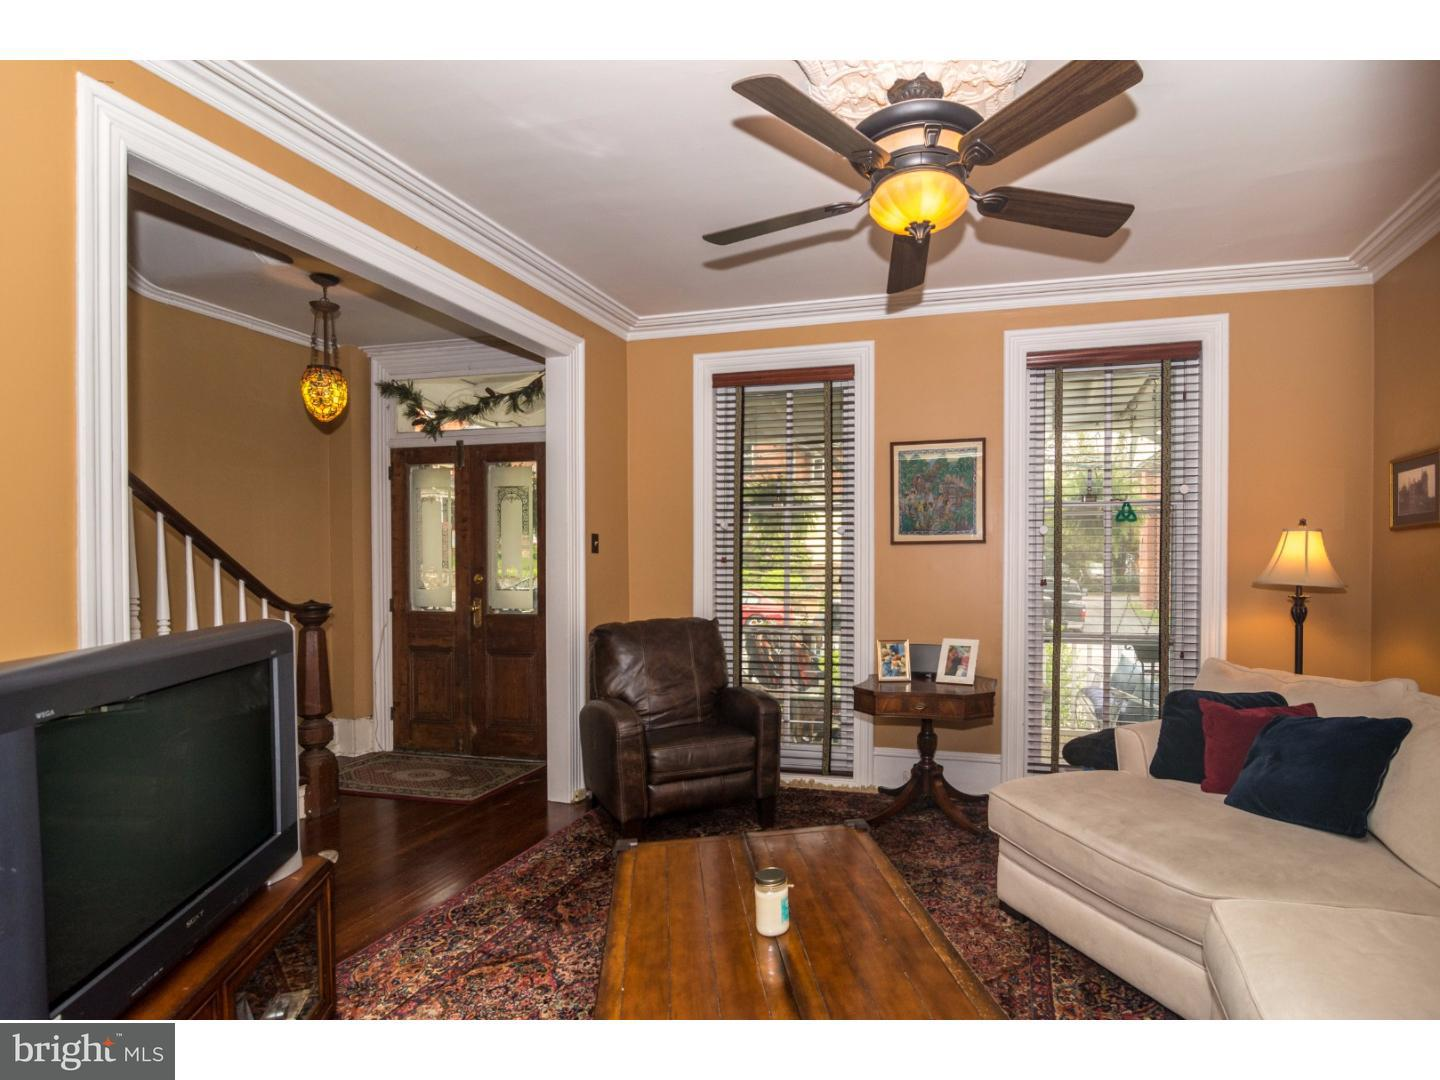 98 S CLINTON ST, DOYLESTOWN - Listed at $675,000,